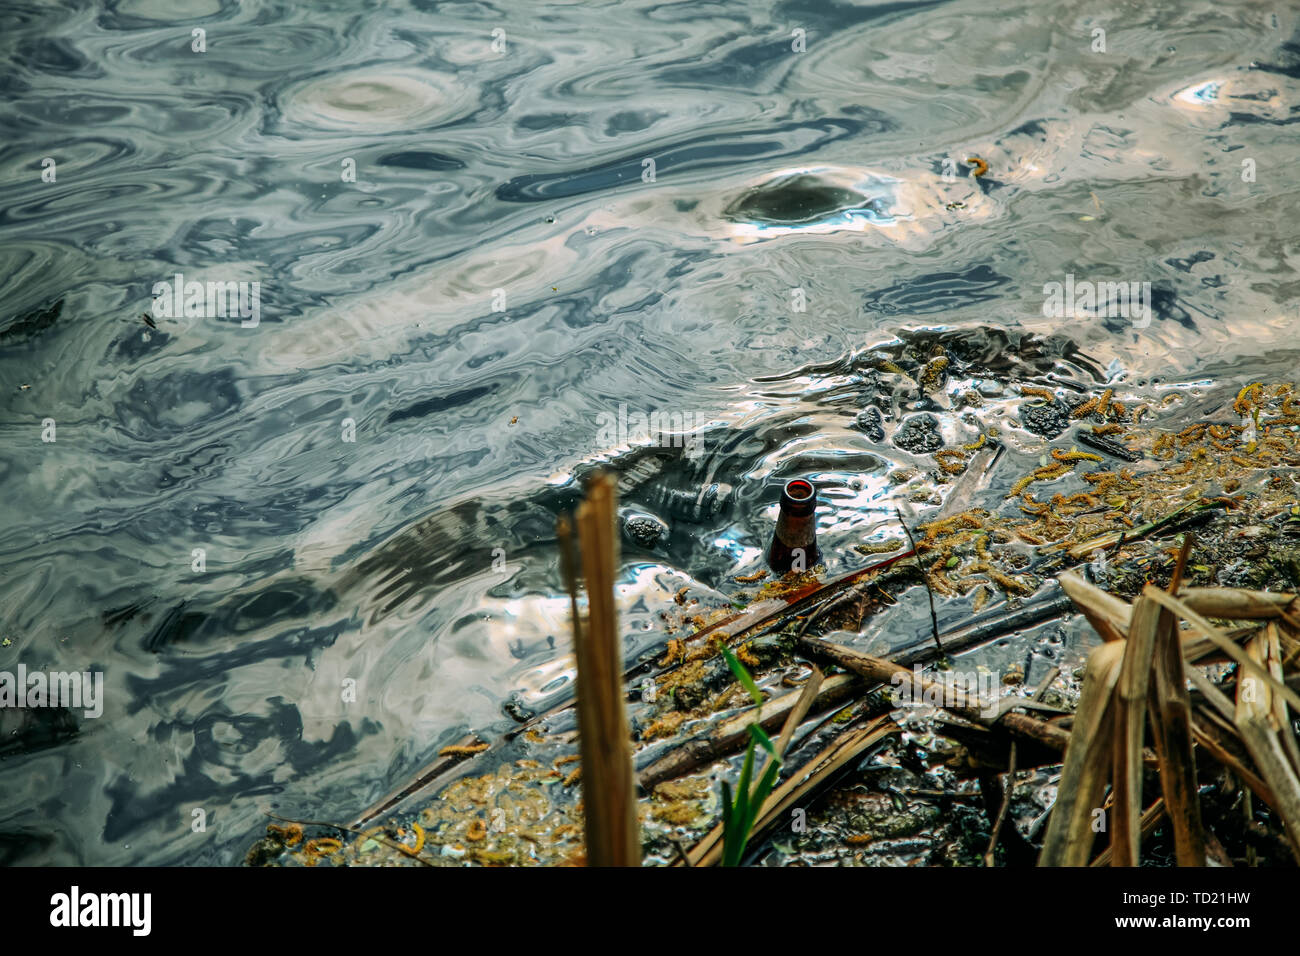 An empty glass bottle floats down a muddy river. - Stock Image